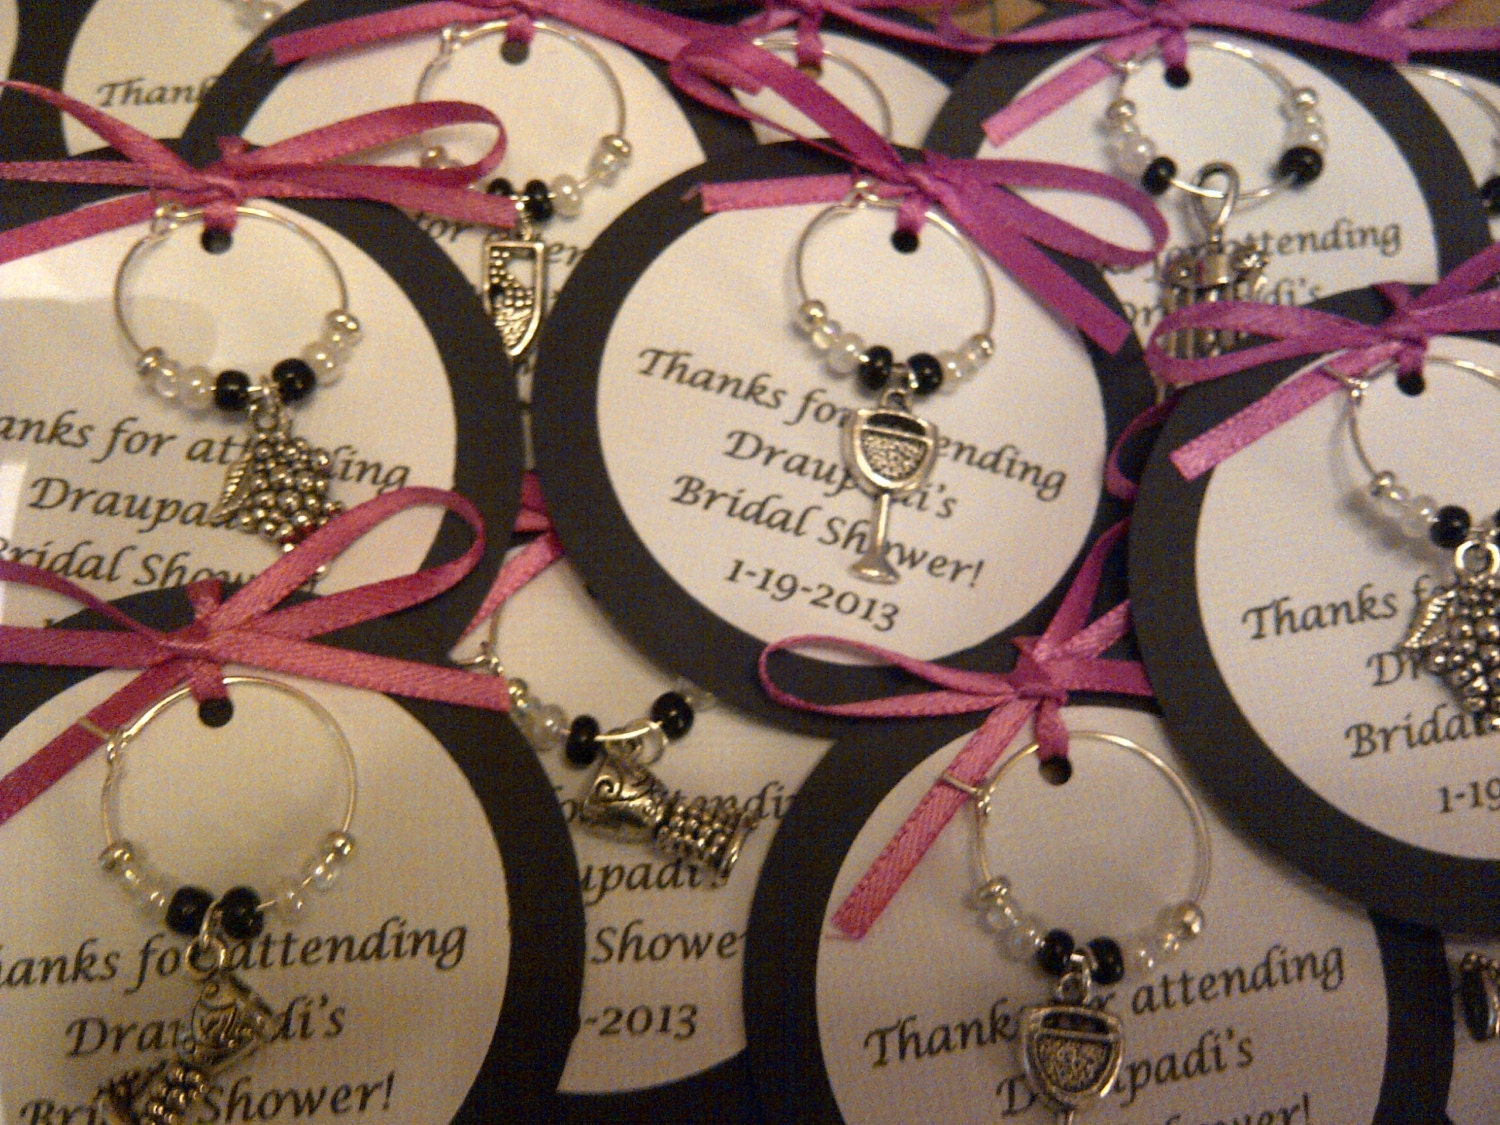 Wedding Gifts Wine: 5-45 Custom Wine Themed Wine Charm Favors Weddings Bridal